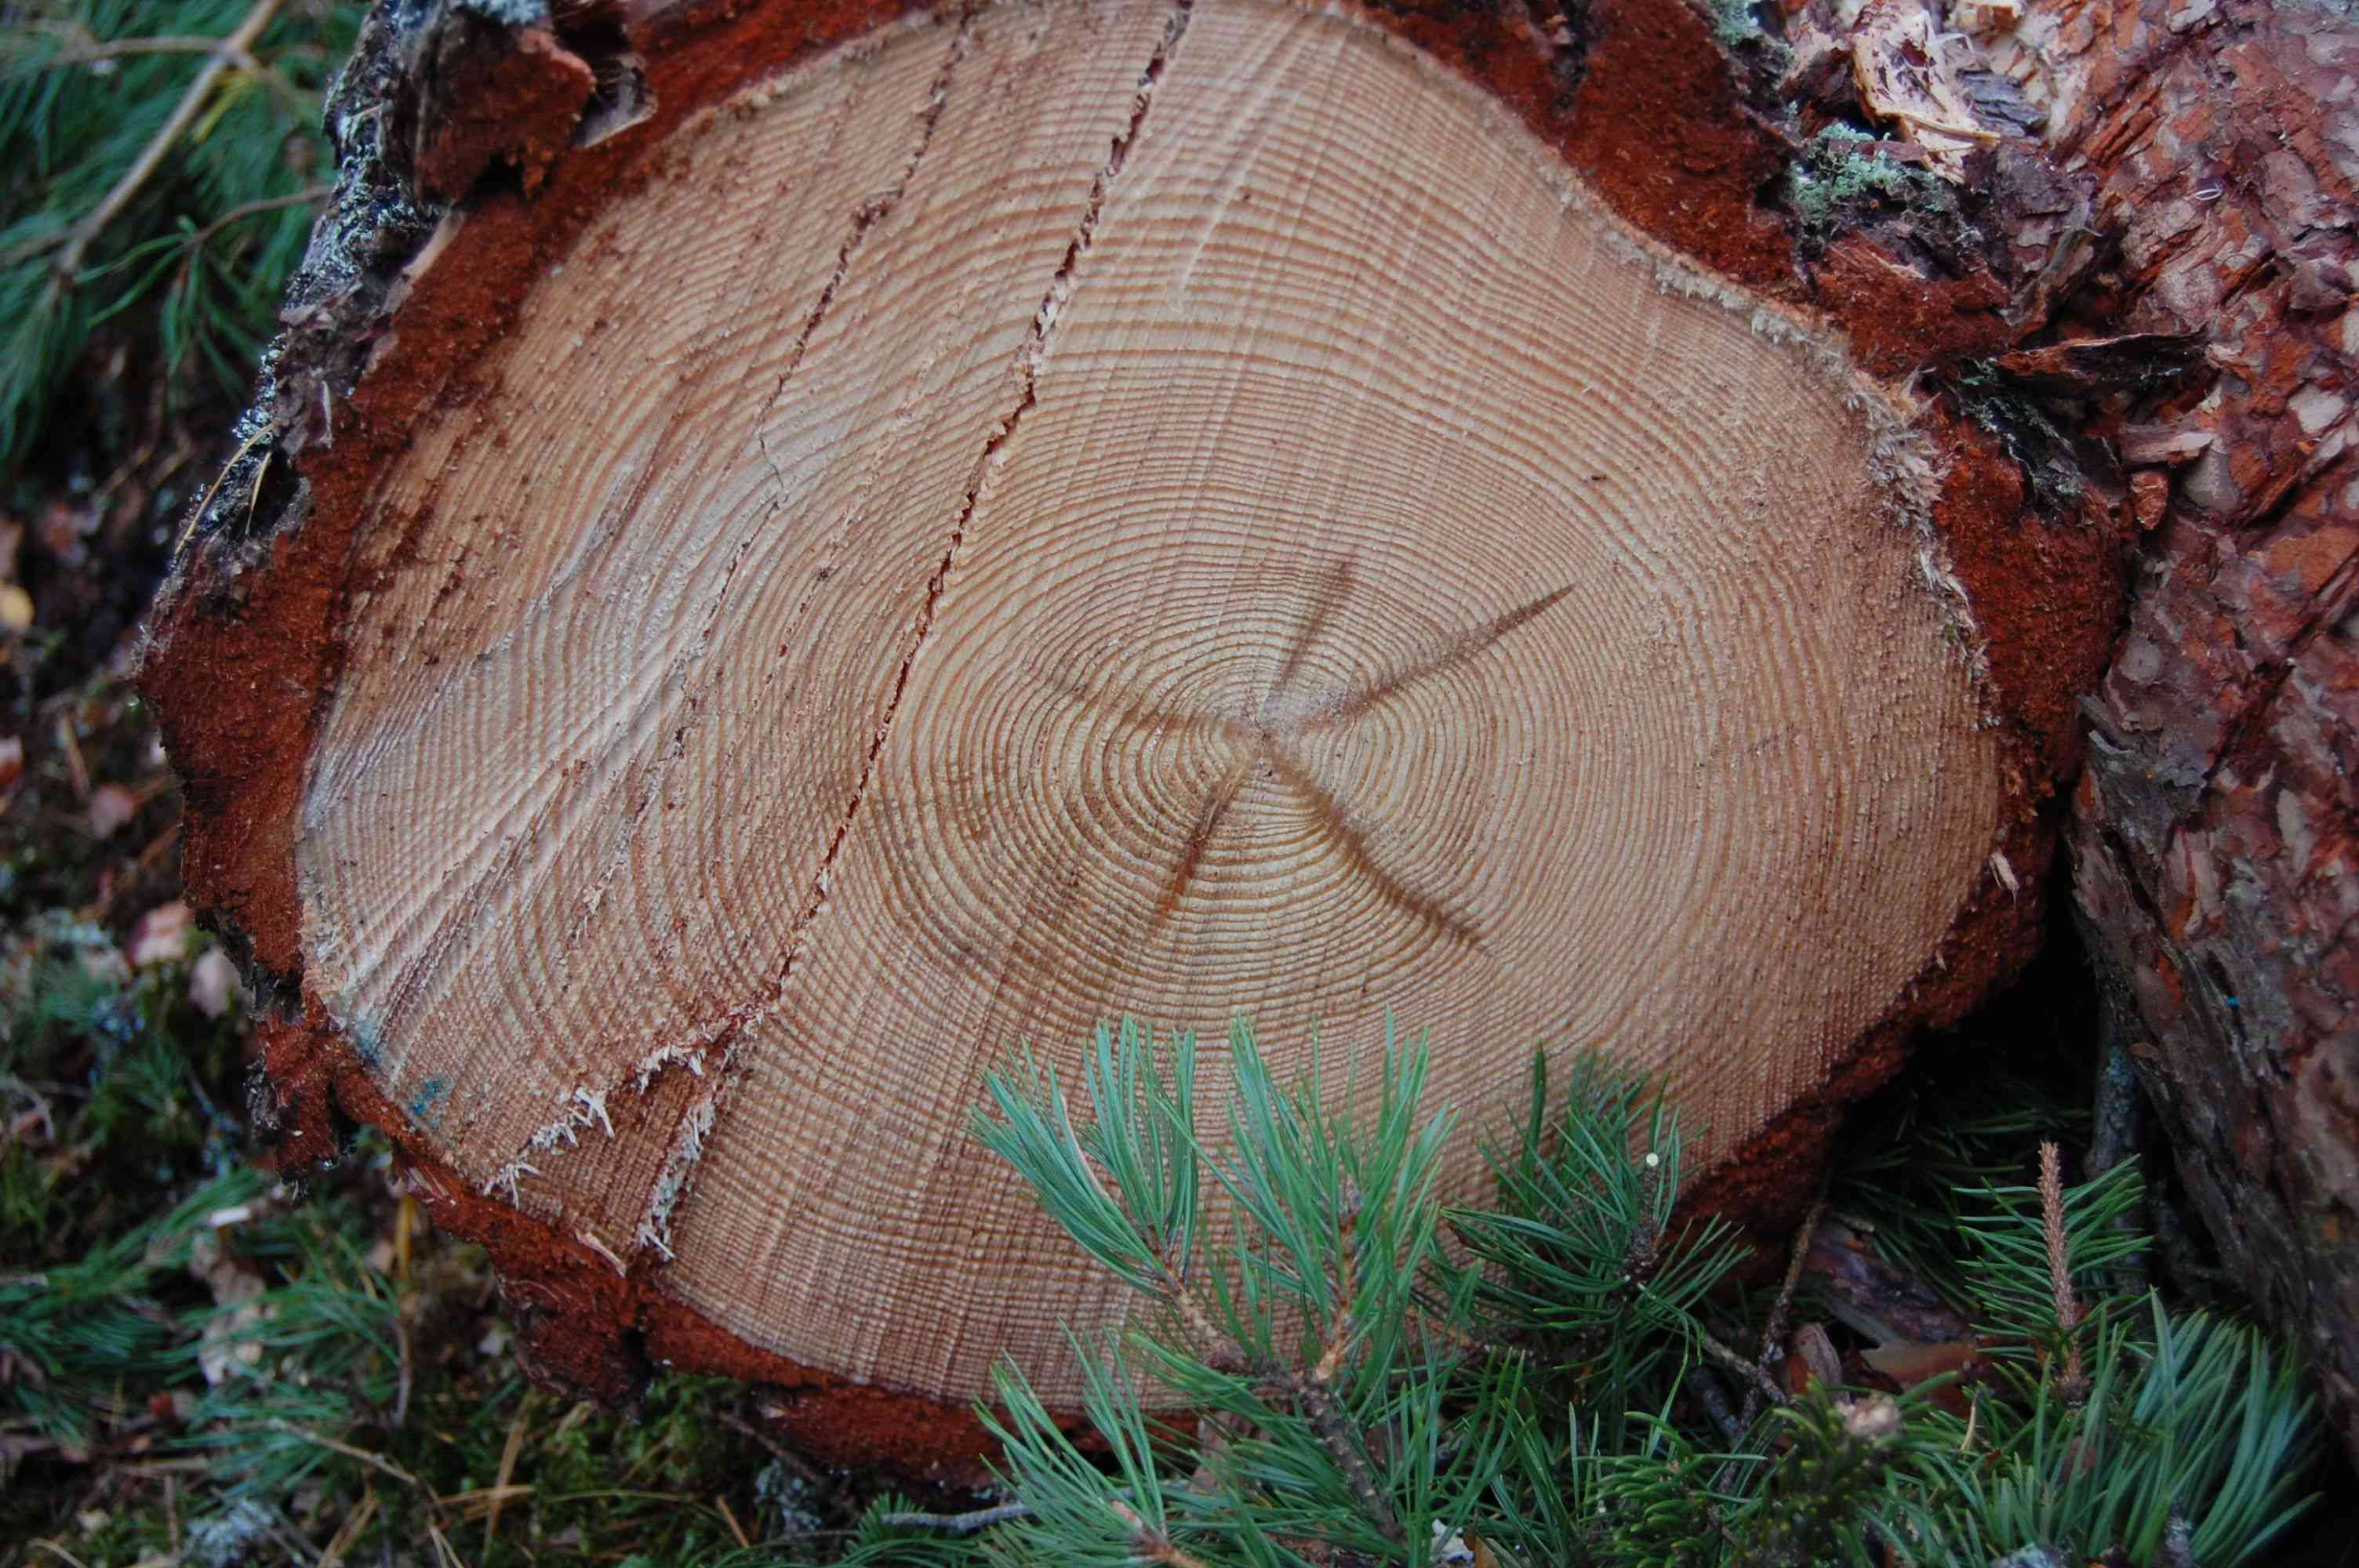 Picture of the cross-section of a sustainably harvested tree in Sweden